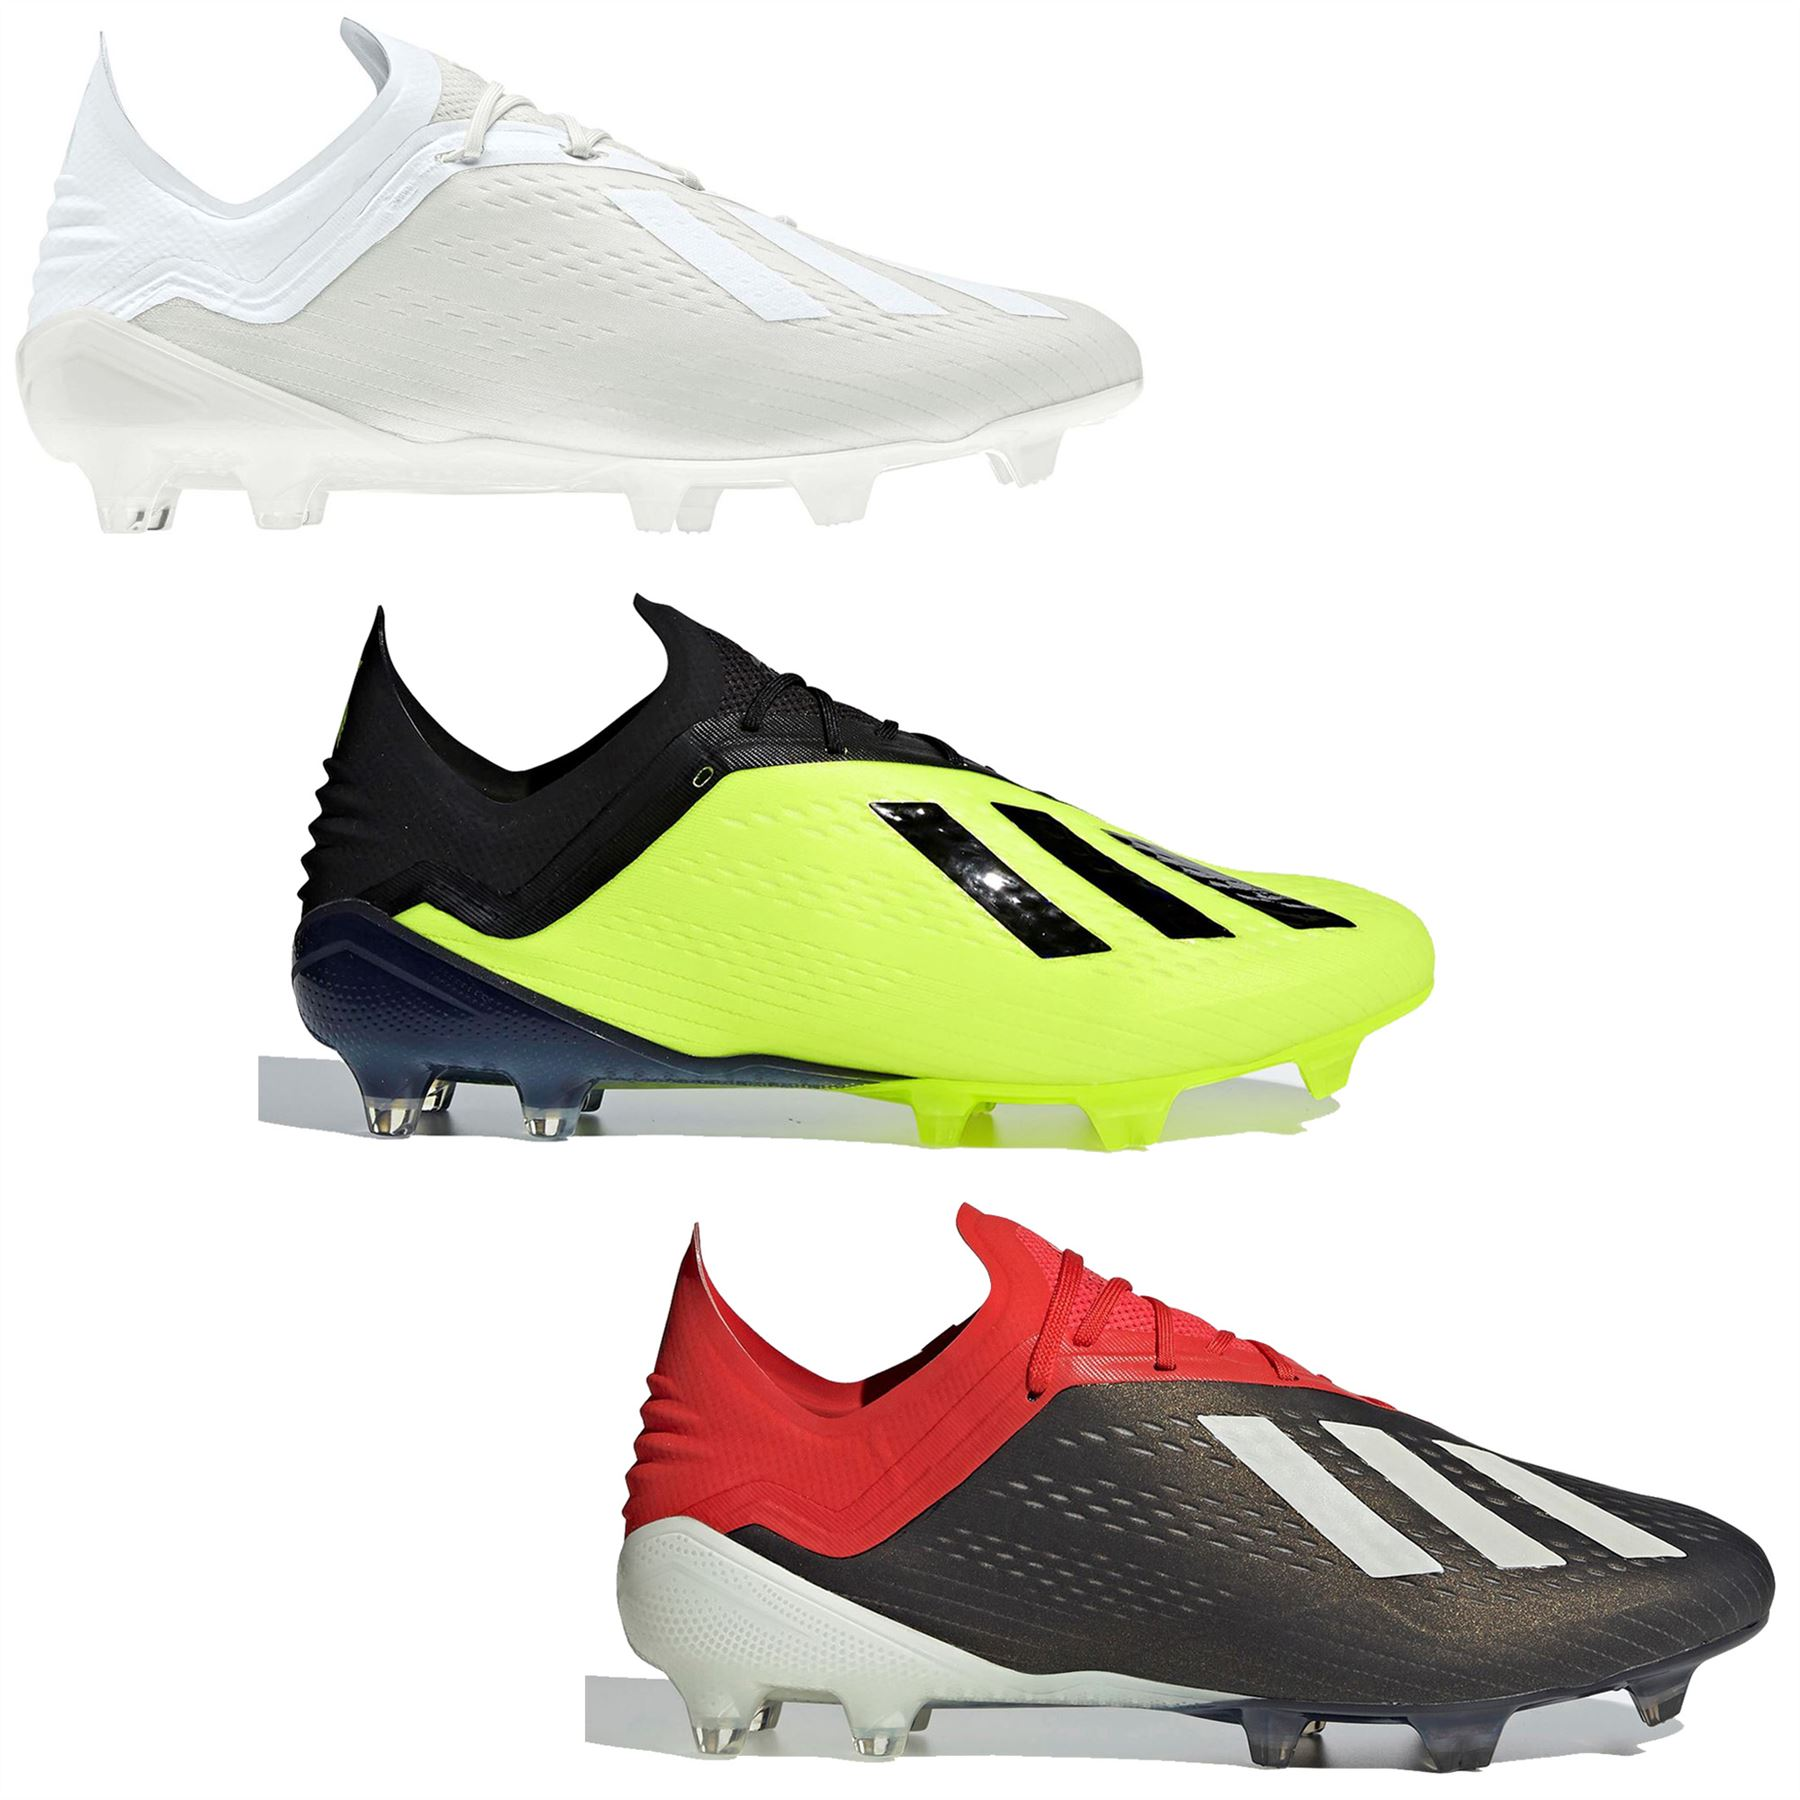 03c80c4aa ... adidas X 18.1 FG Firm Ground Football Boots Mens Soccer Shoes Cleats ...